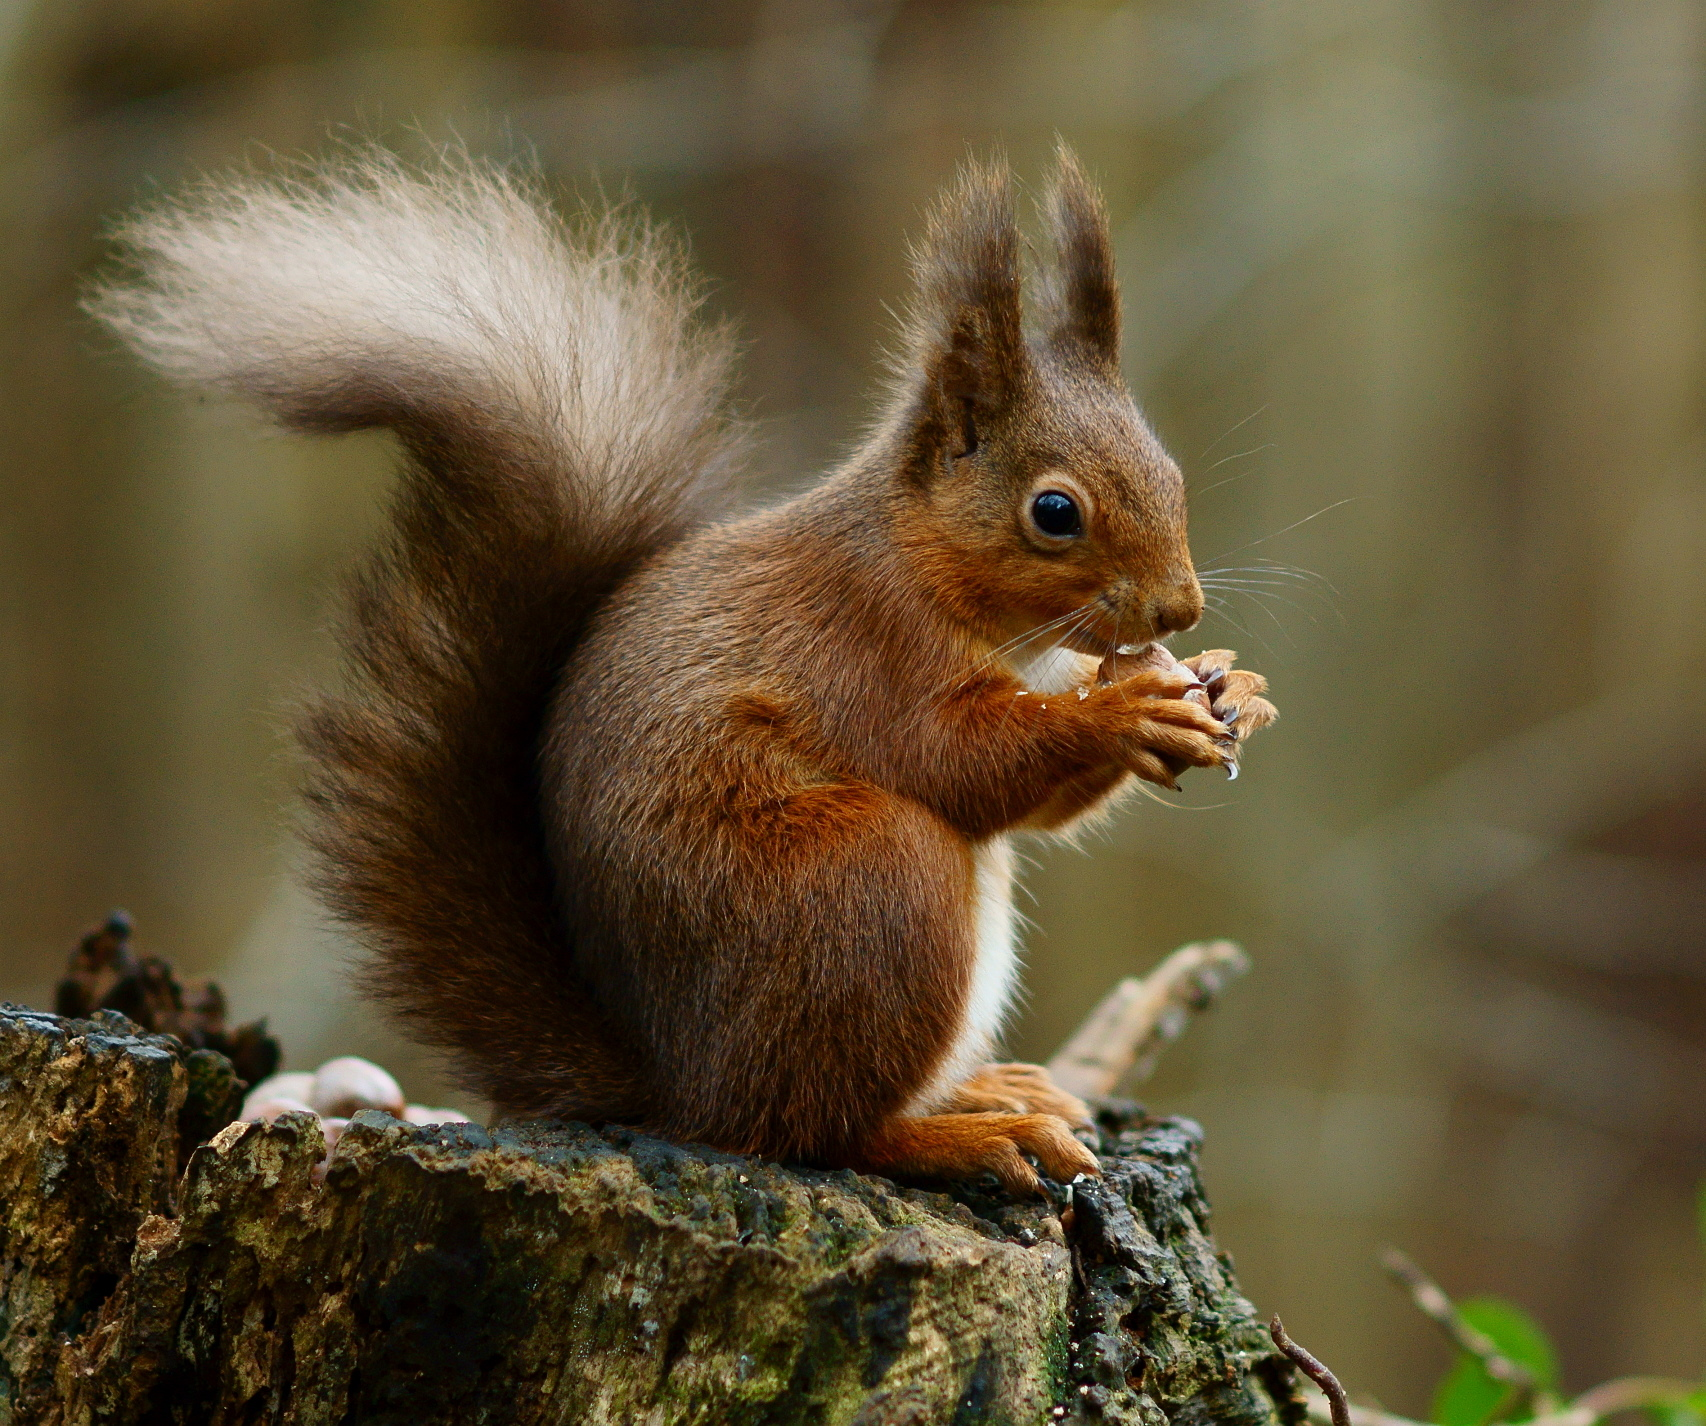 A Squirrel That Is Worried Hackers Might Steal Its Acorn